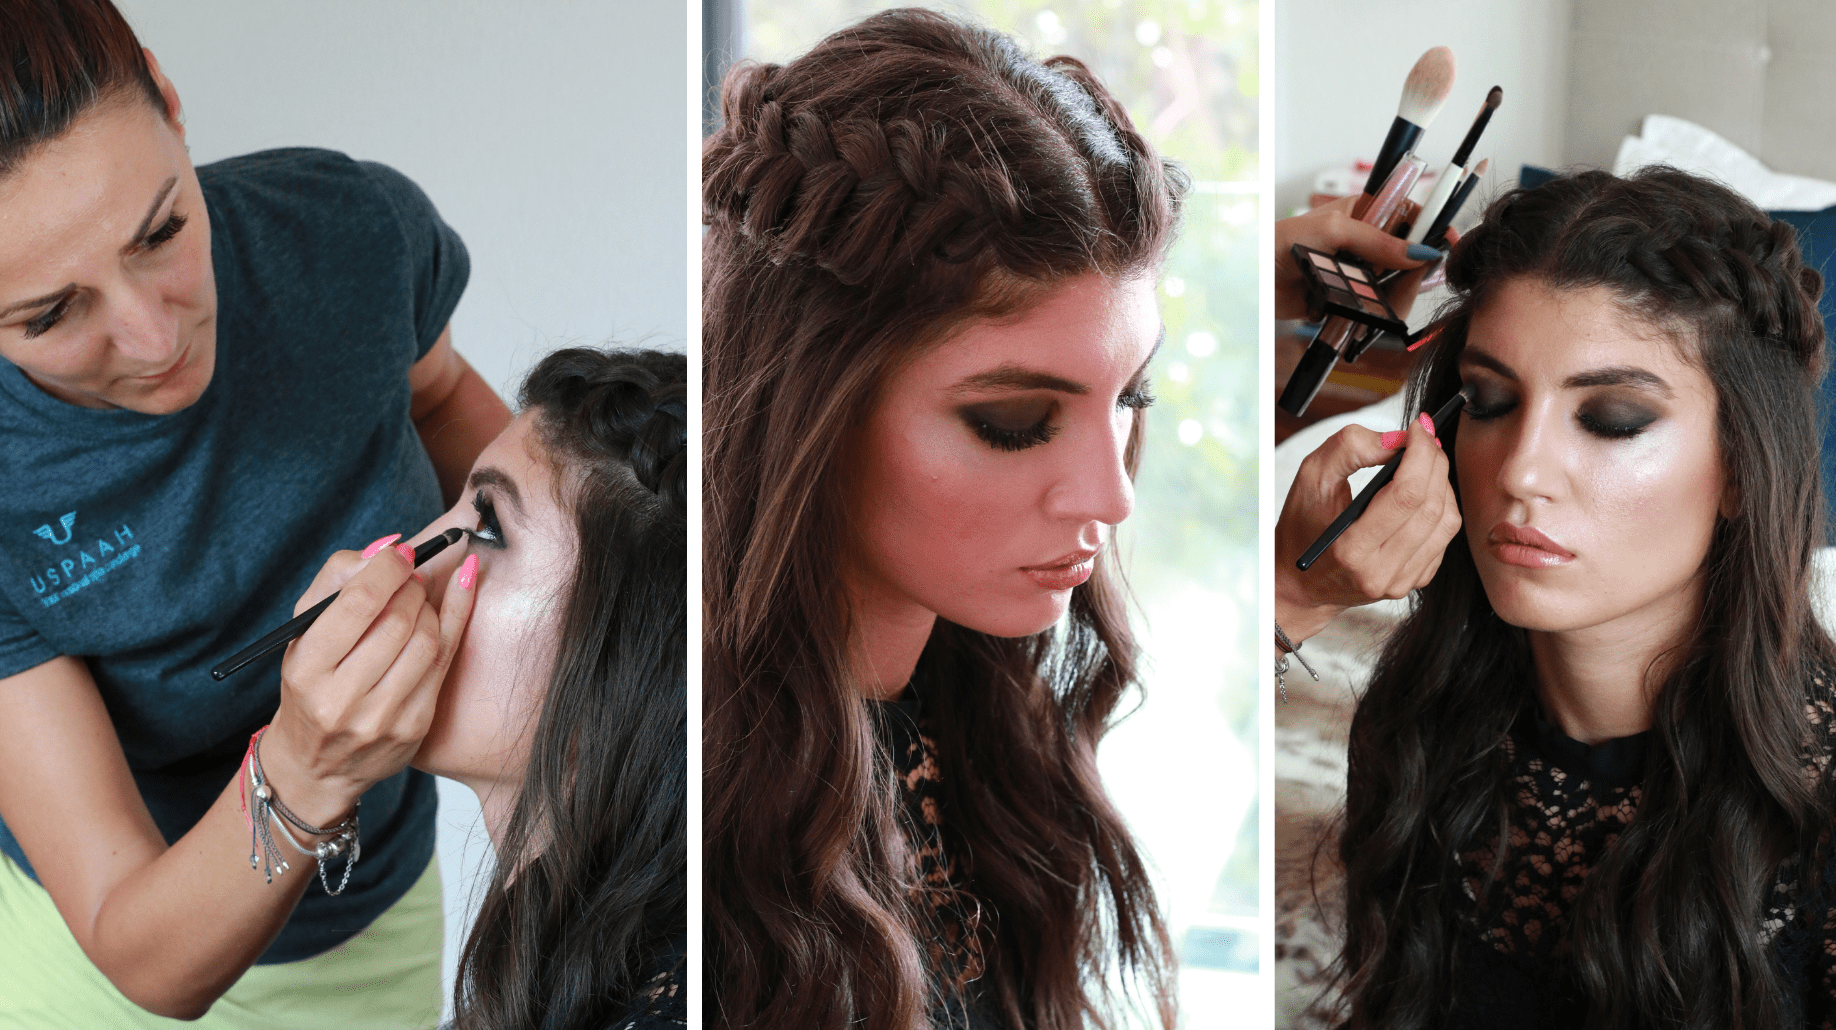 Mobile Makeup Artists Tranforming Your Look